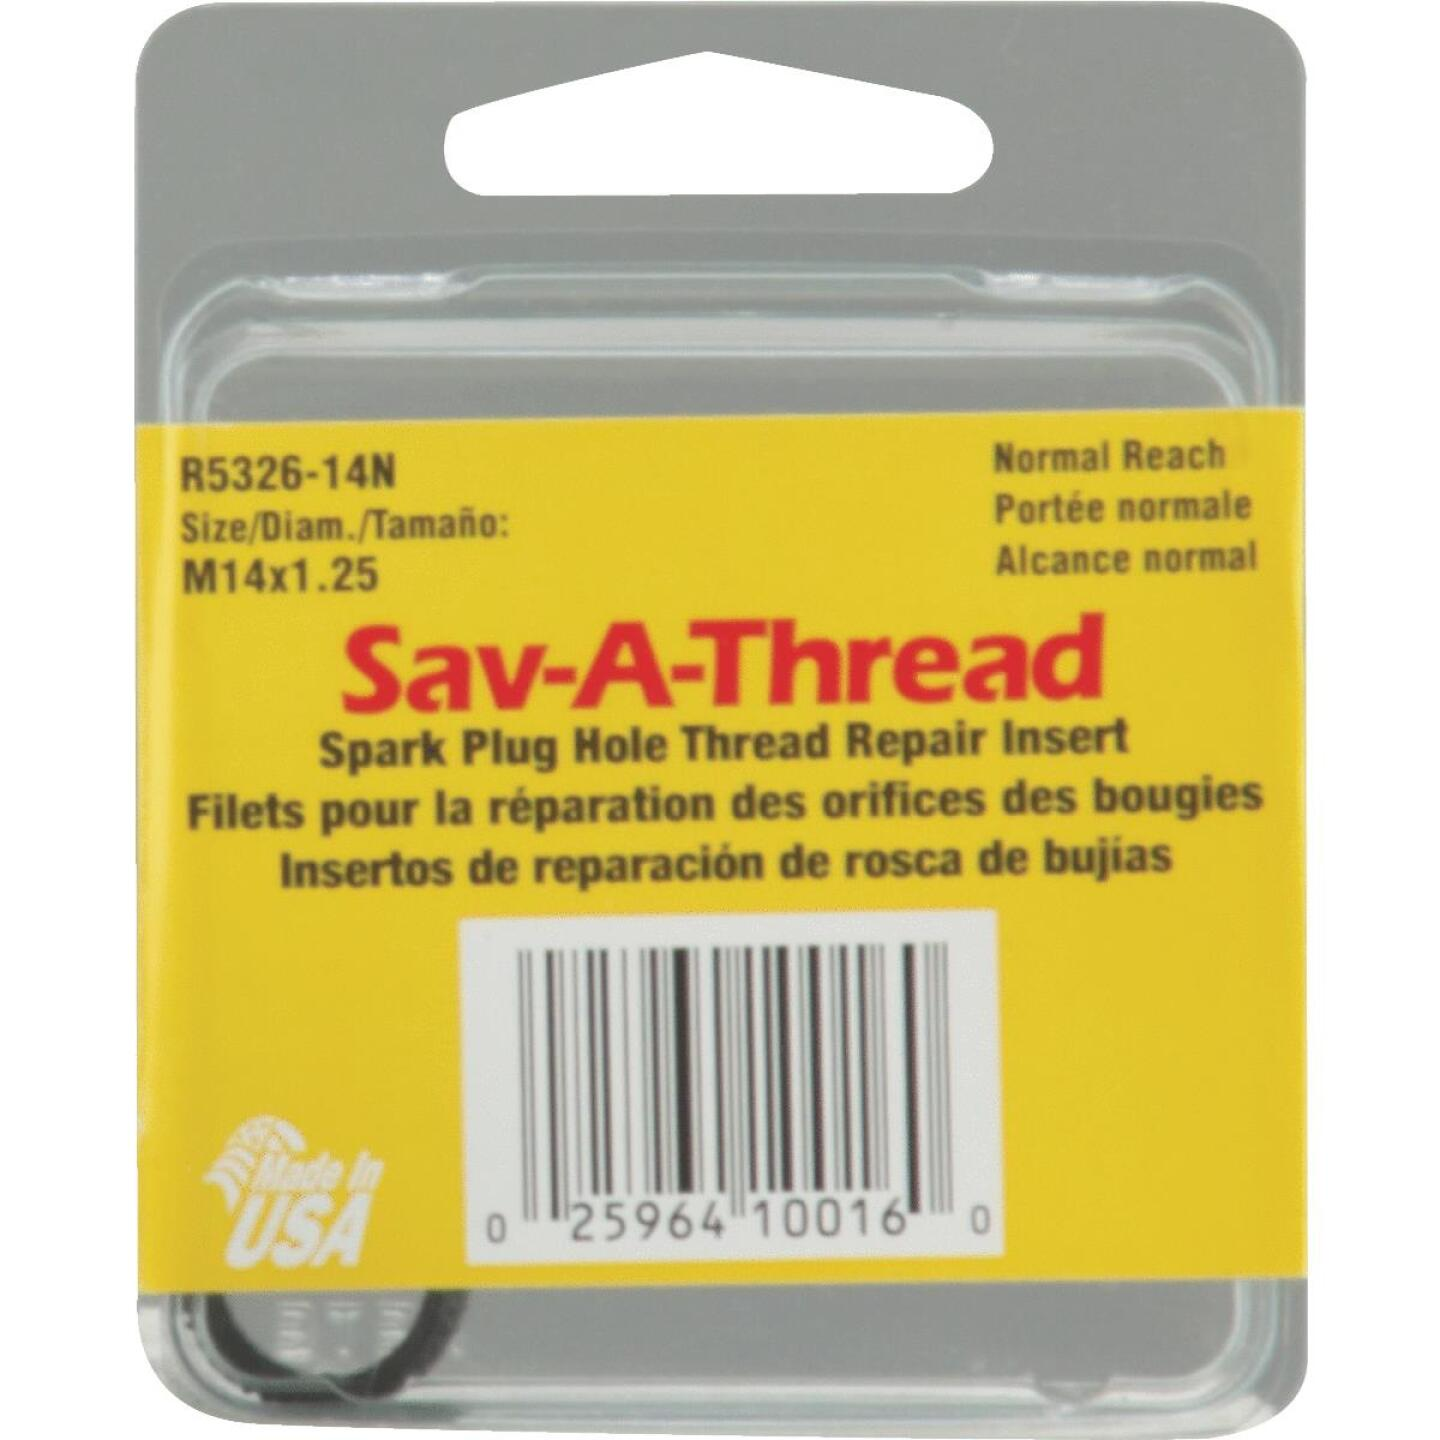 HeliCoil 14 x 1.25mm Normal Spark Plug Thread Insert Image 1